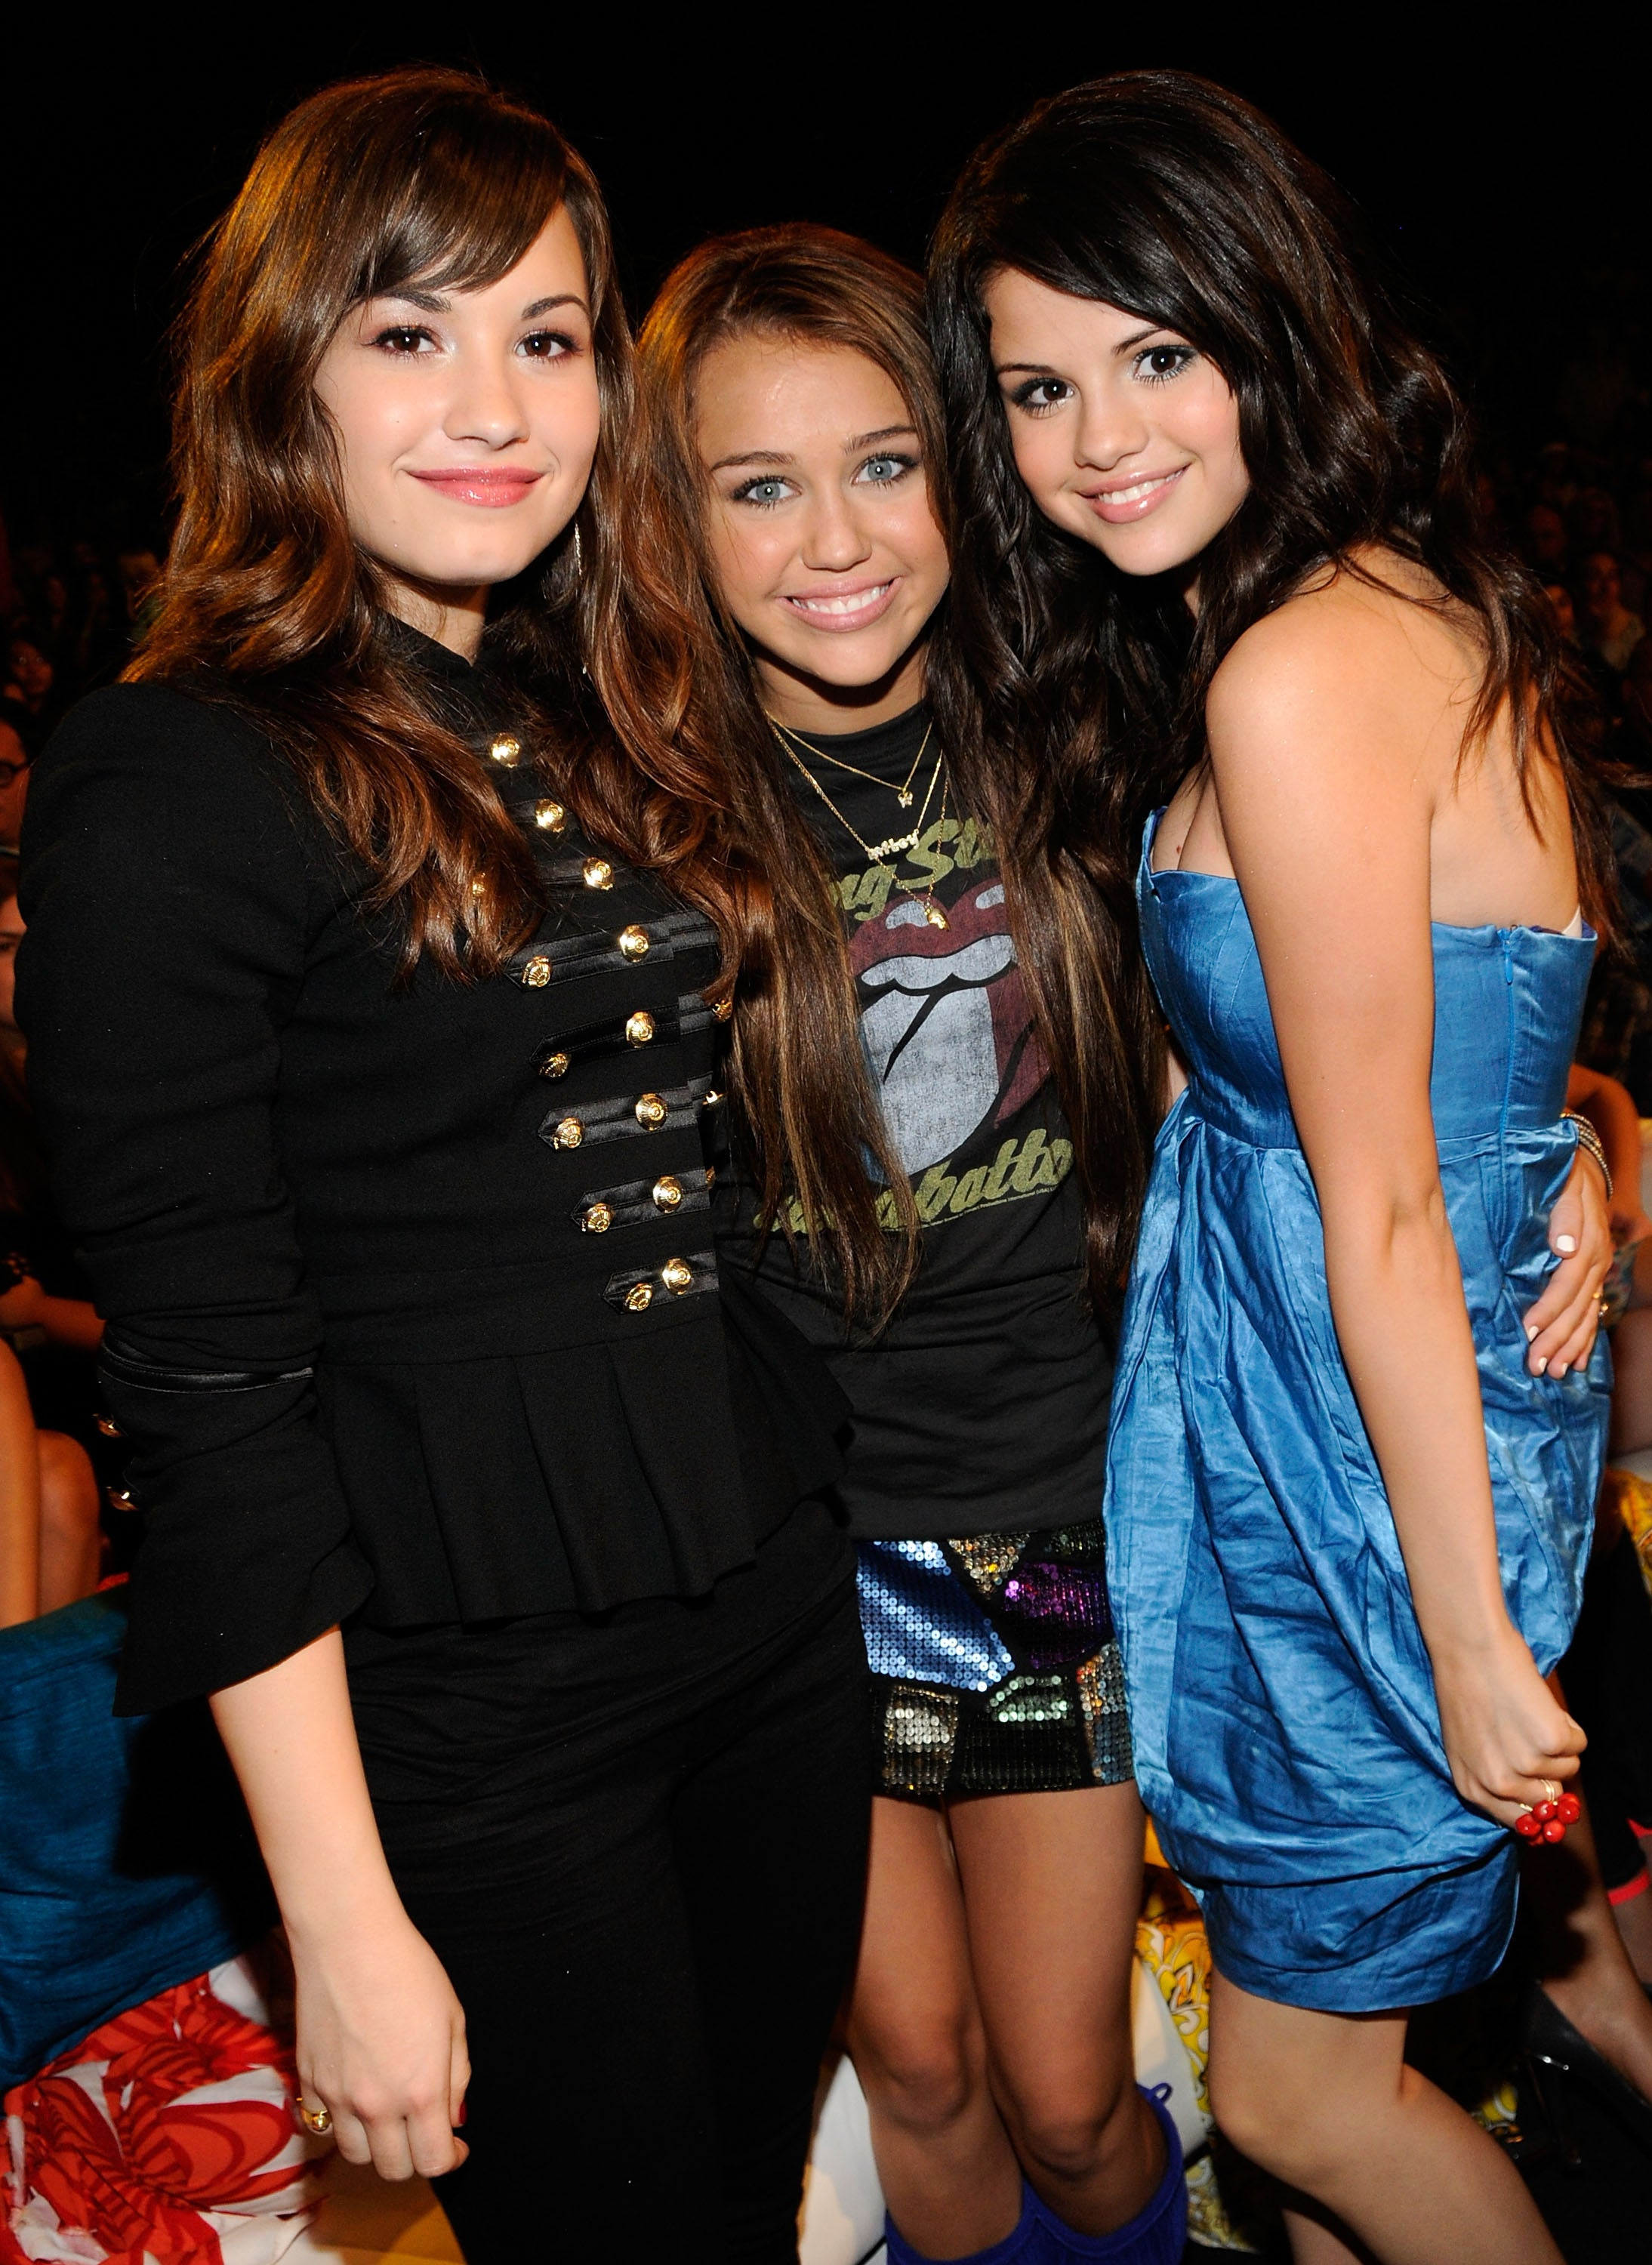 Demi Lovato And Selena Gomez And Miley Cyrus And Taylor Swift Best Friends